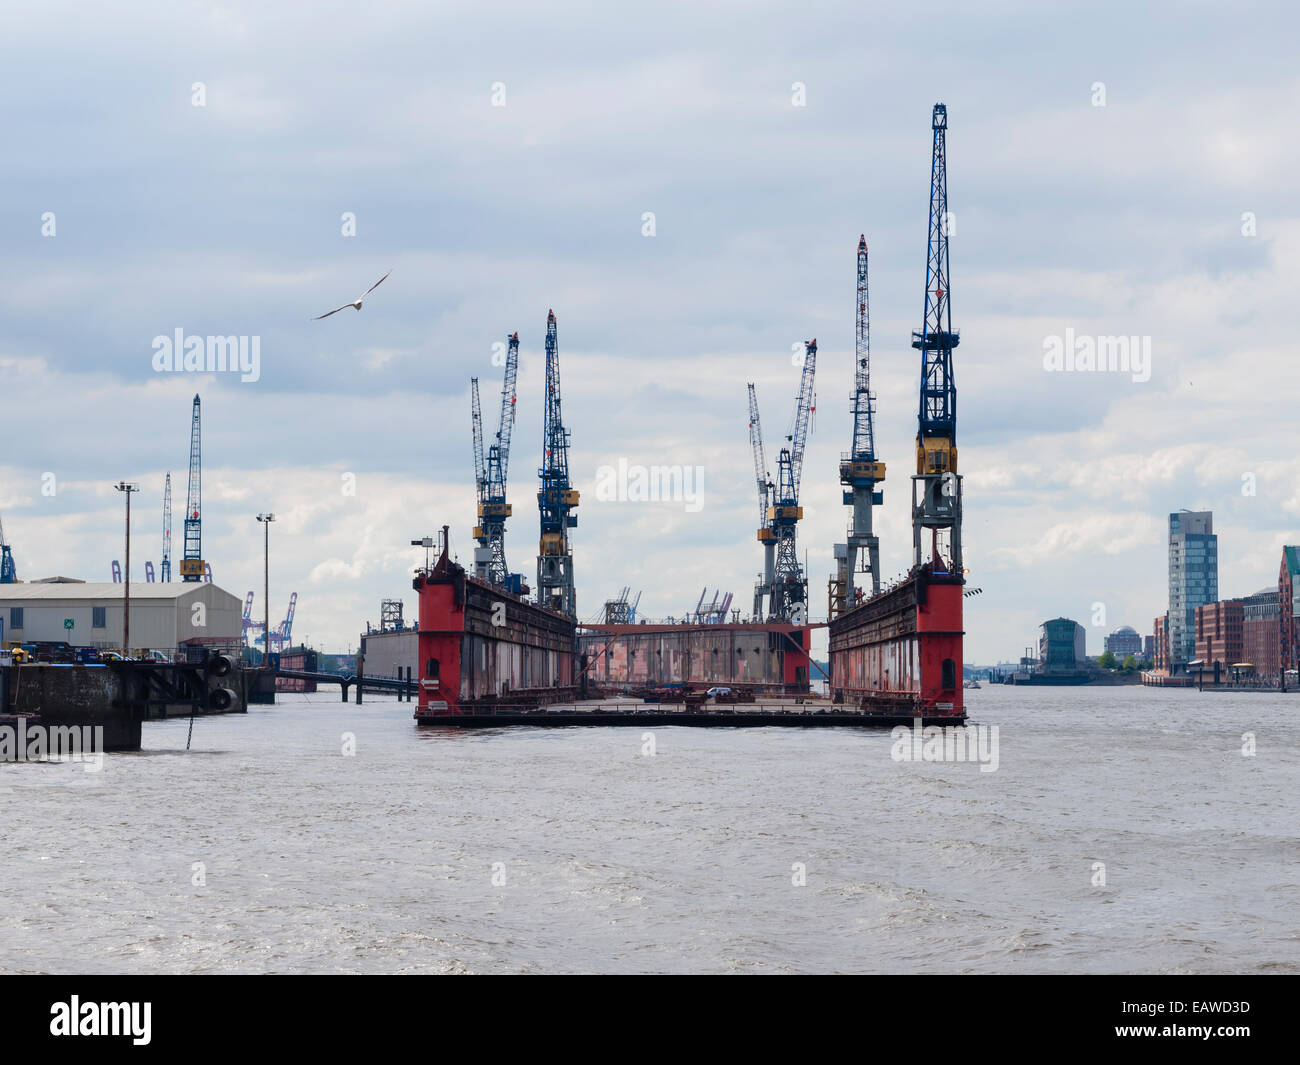 An empty dry dock of German shipbuilder 'Blohm+Voss' is floating on the Elbe river at Hamburg harbor. - Stock Image